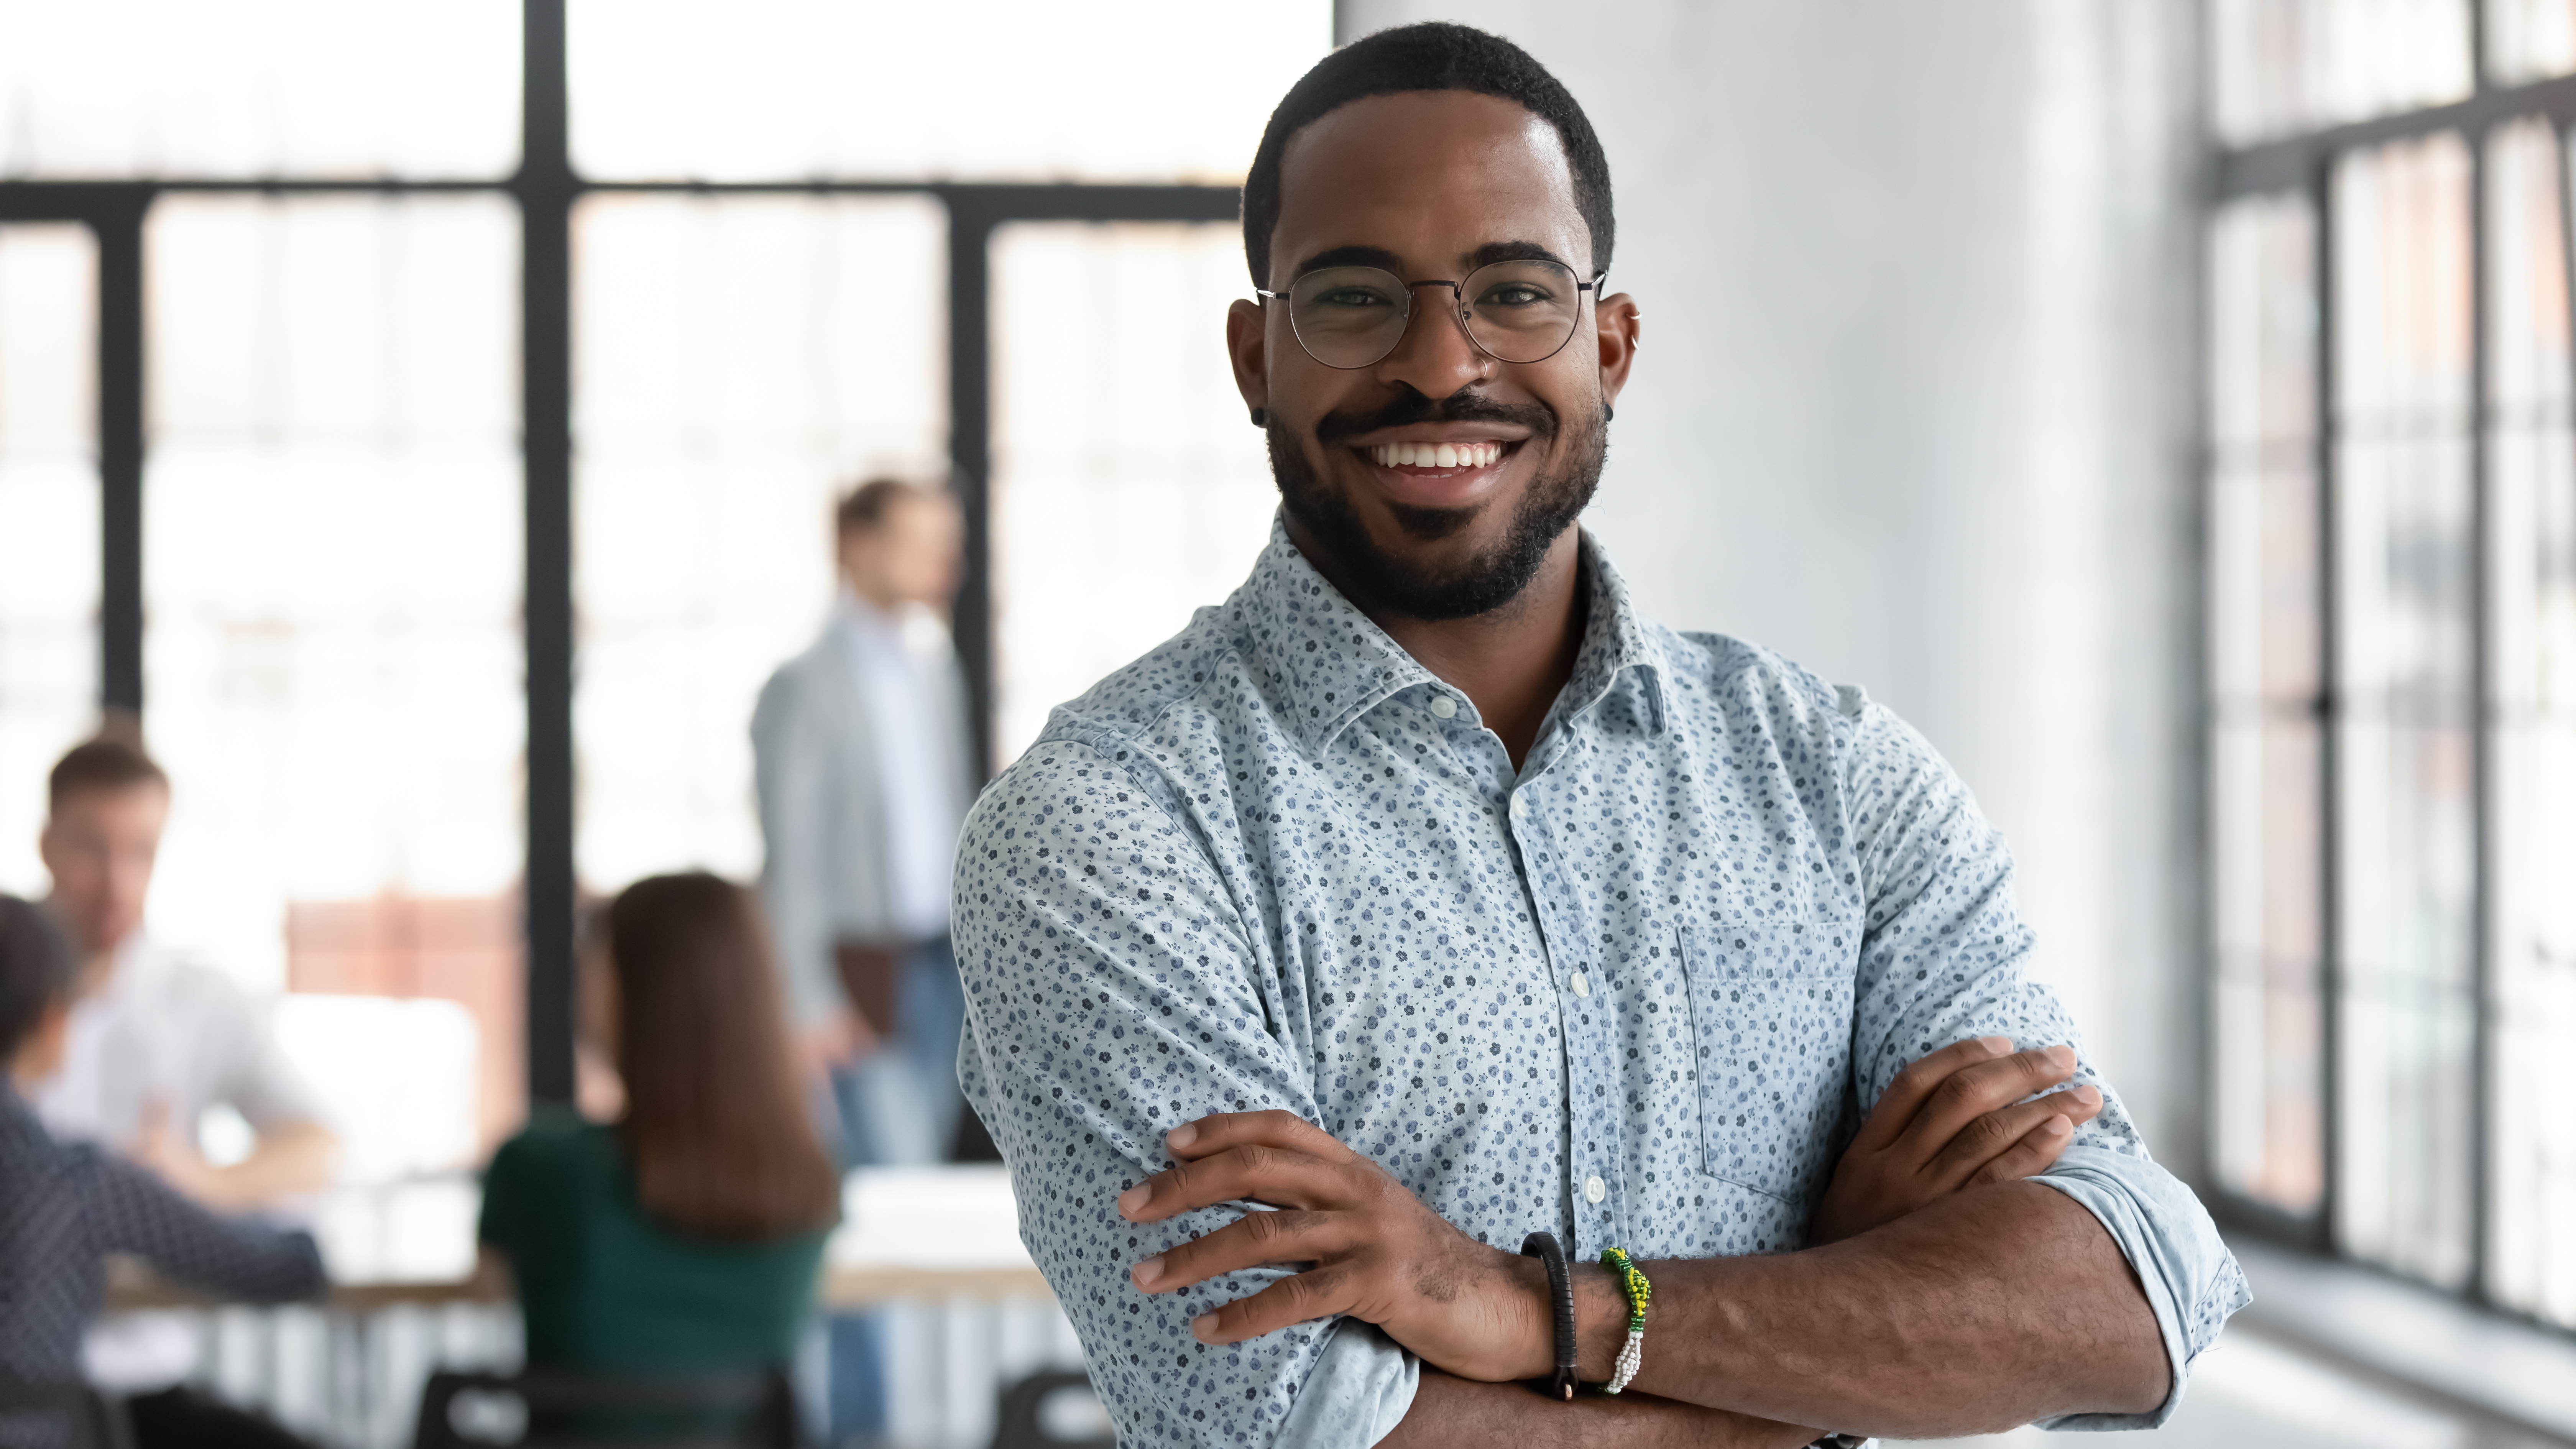 Ceo smiling in office